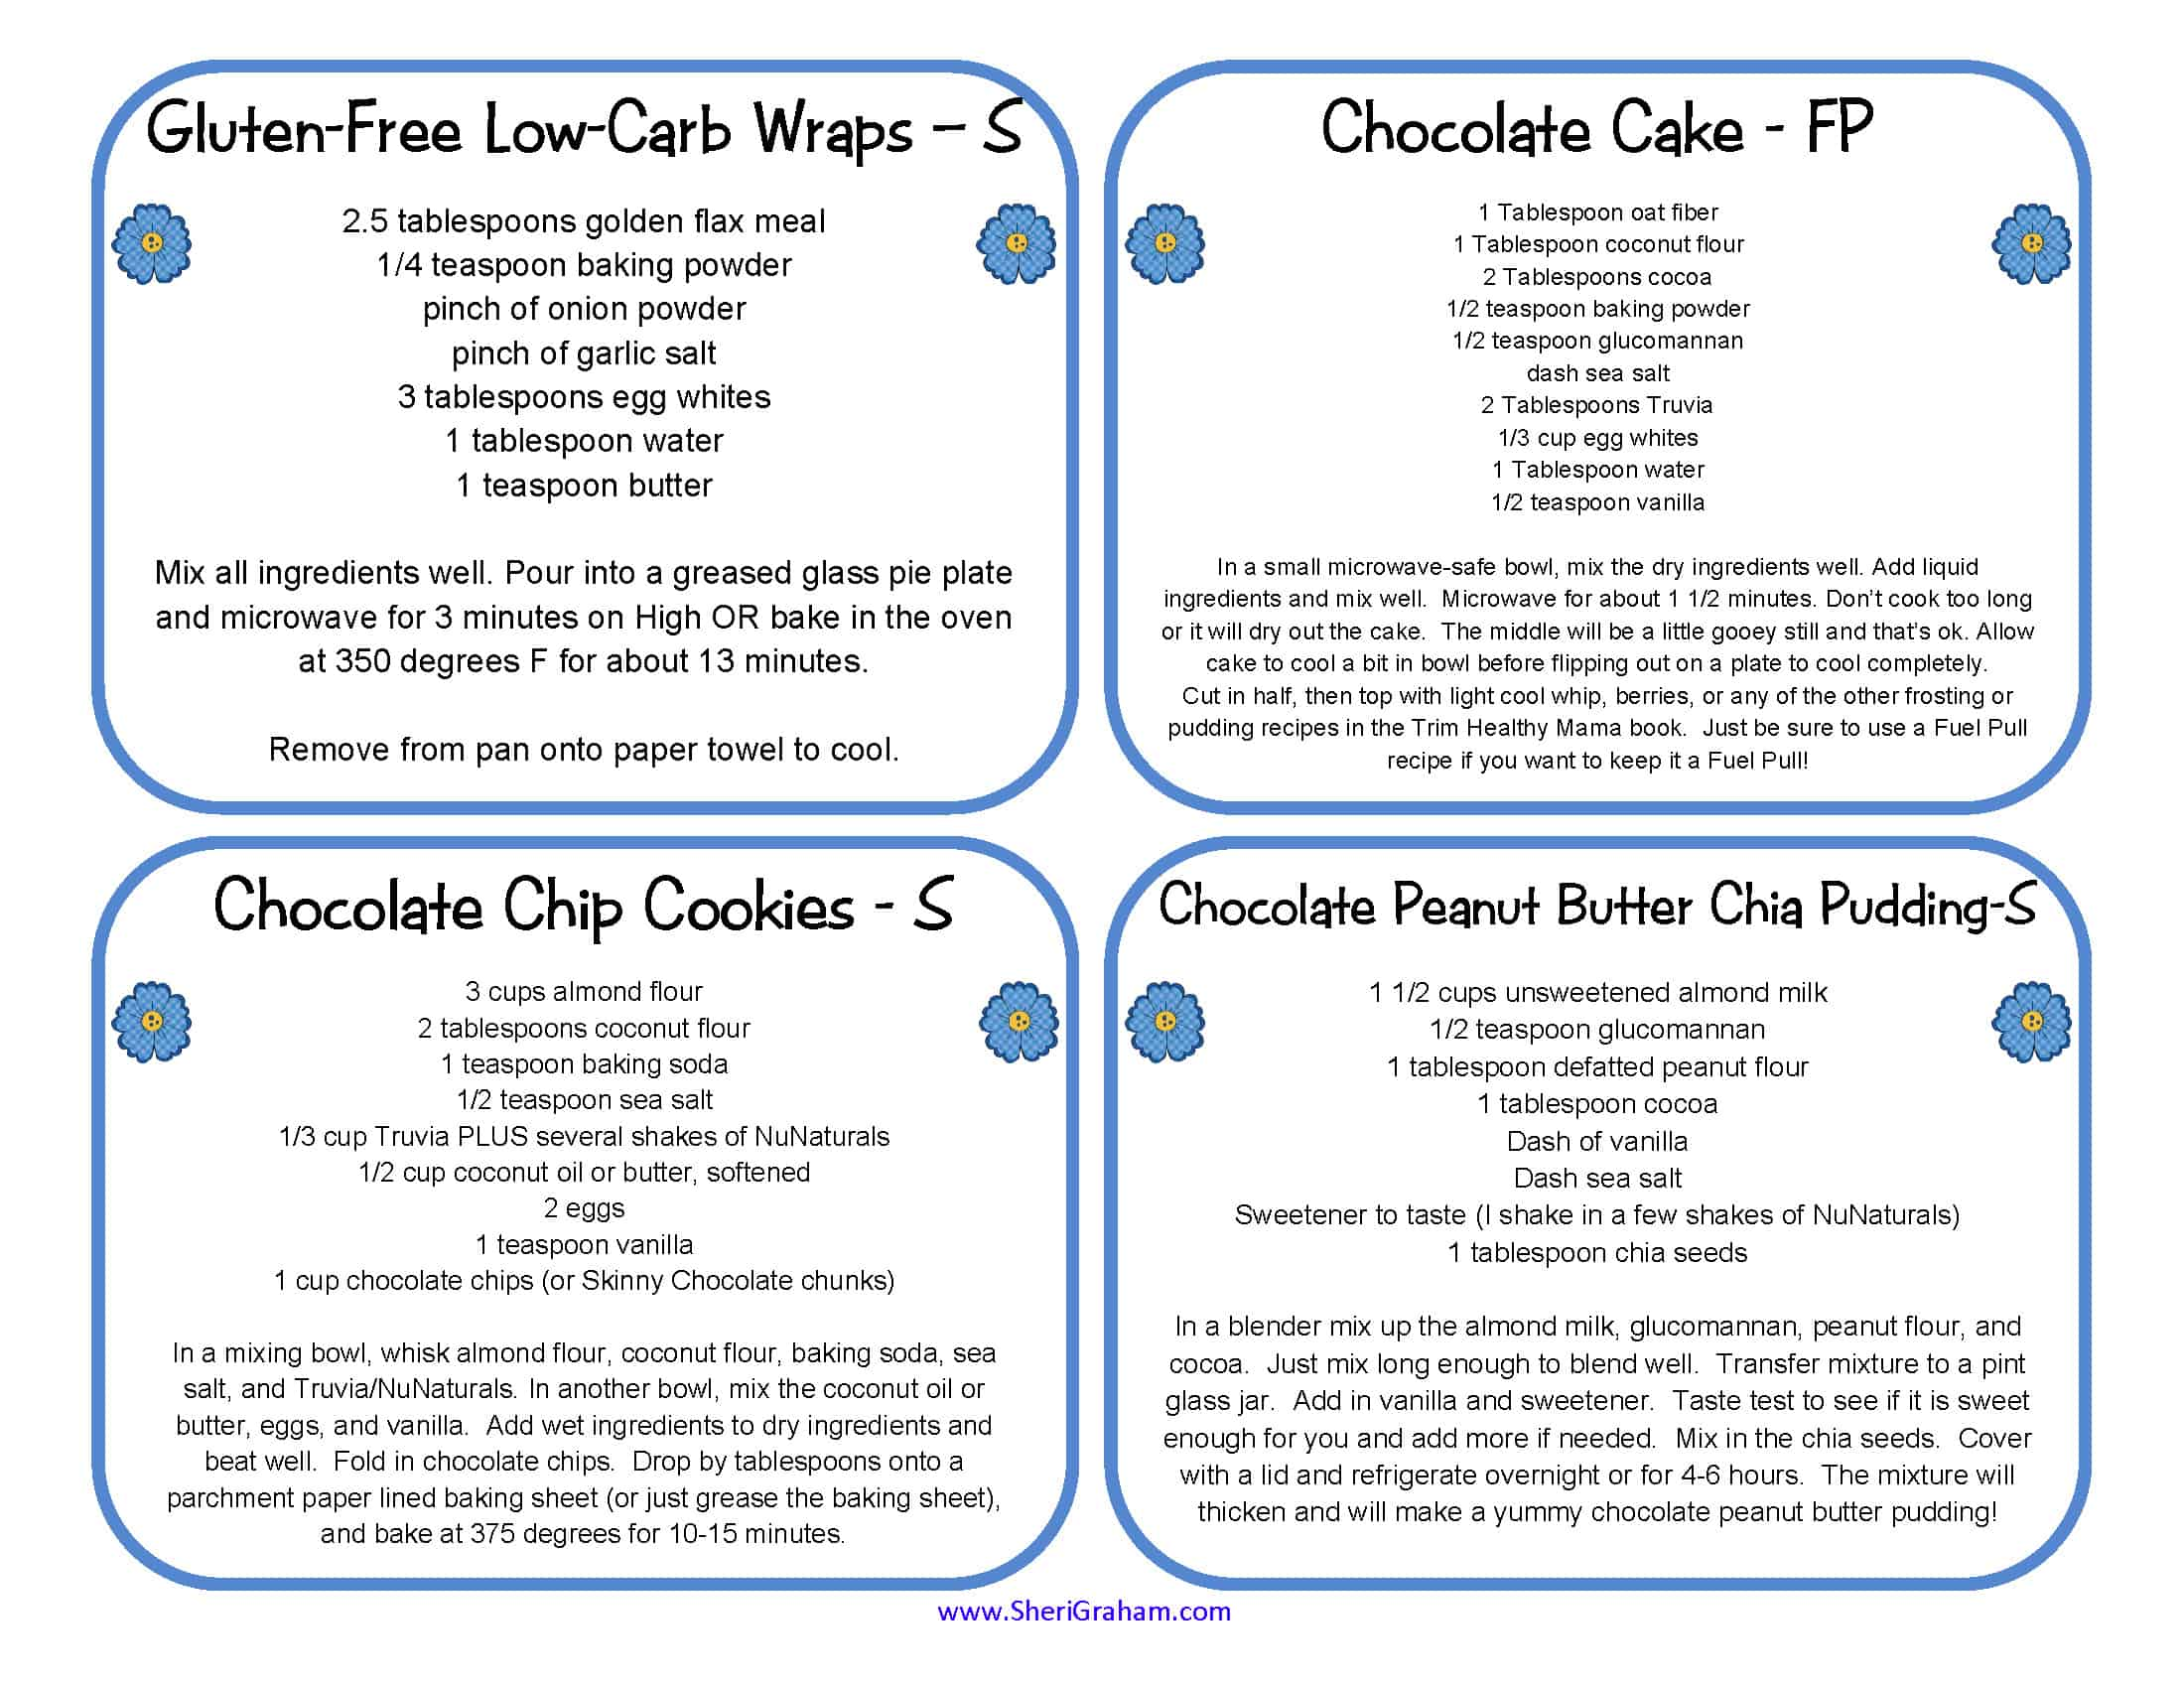 Printable Recipe Cards (THM Friendly)